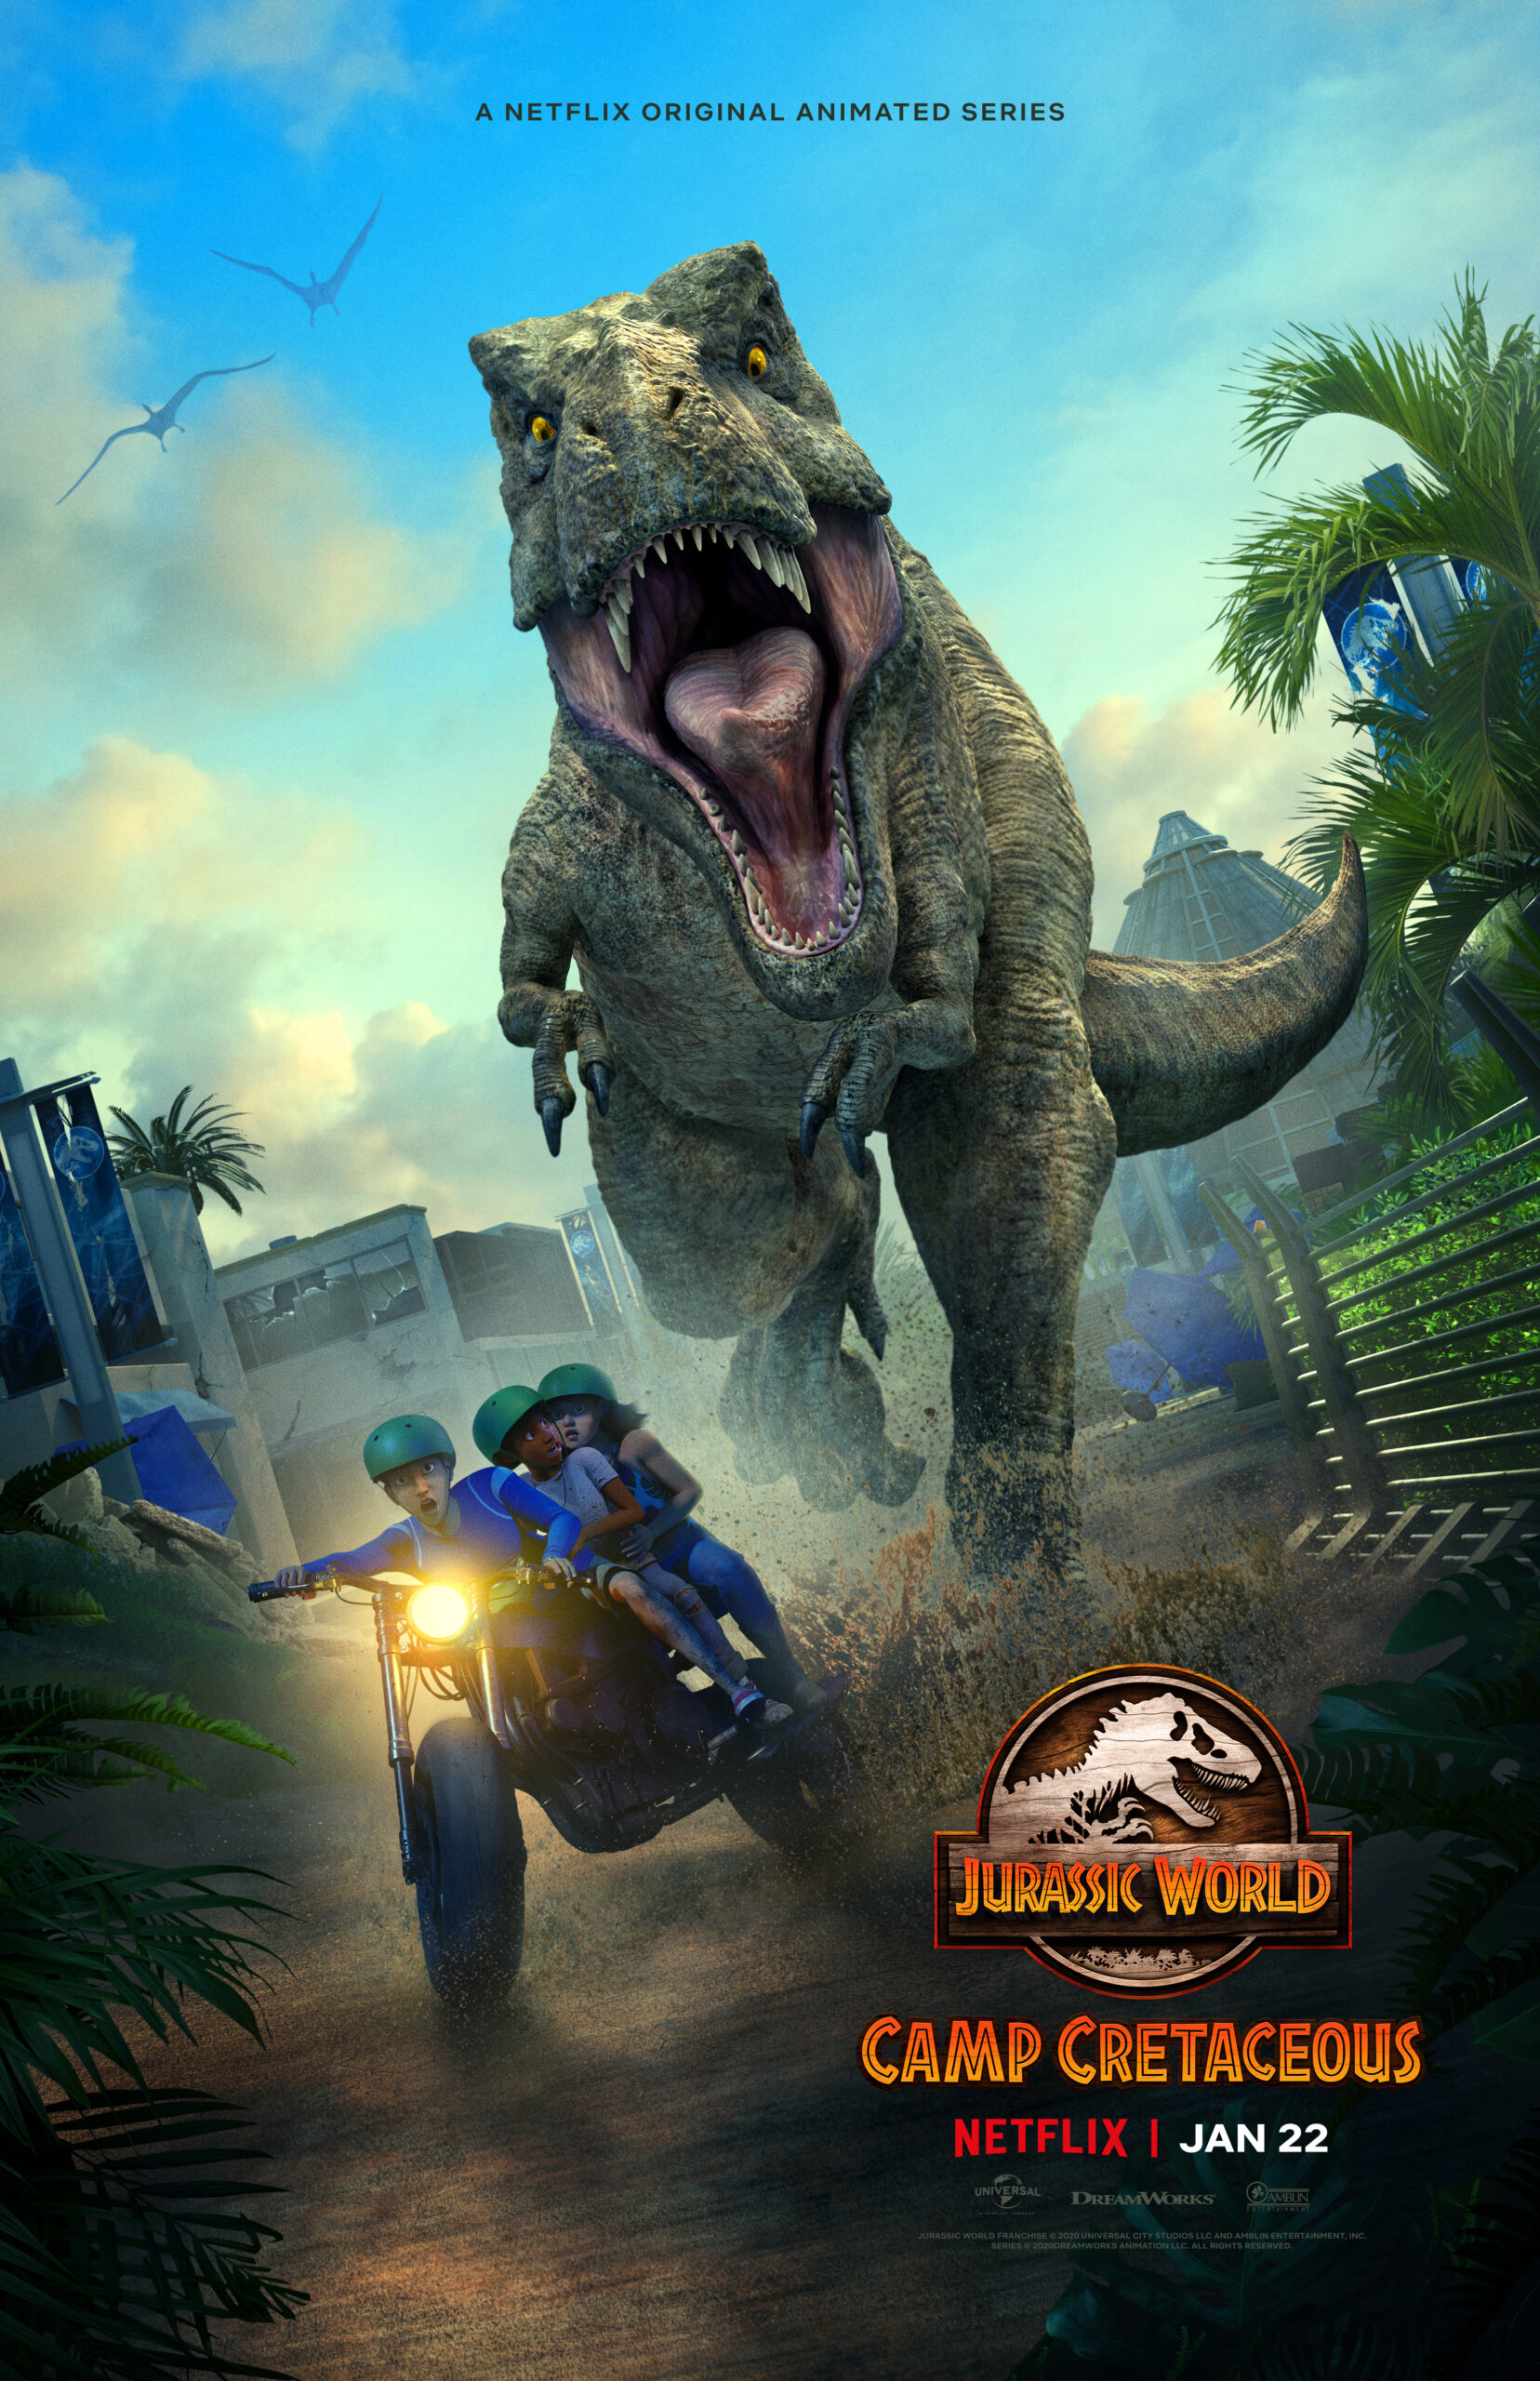 JURASSIC WORLD: CAMP CRETACEOUS SEASON TWO DEBUTS ON NETFLIX JANUARY 22 - Peyton's Momma™